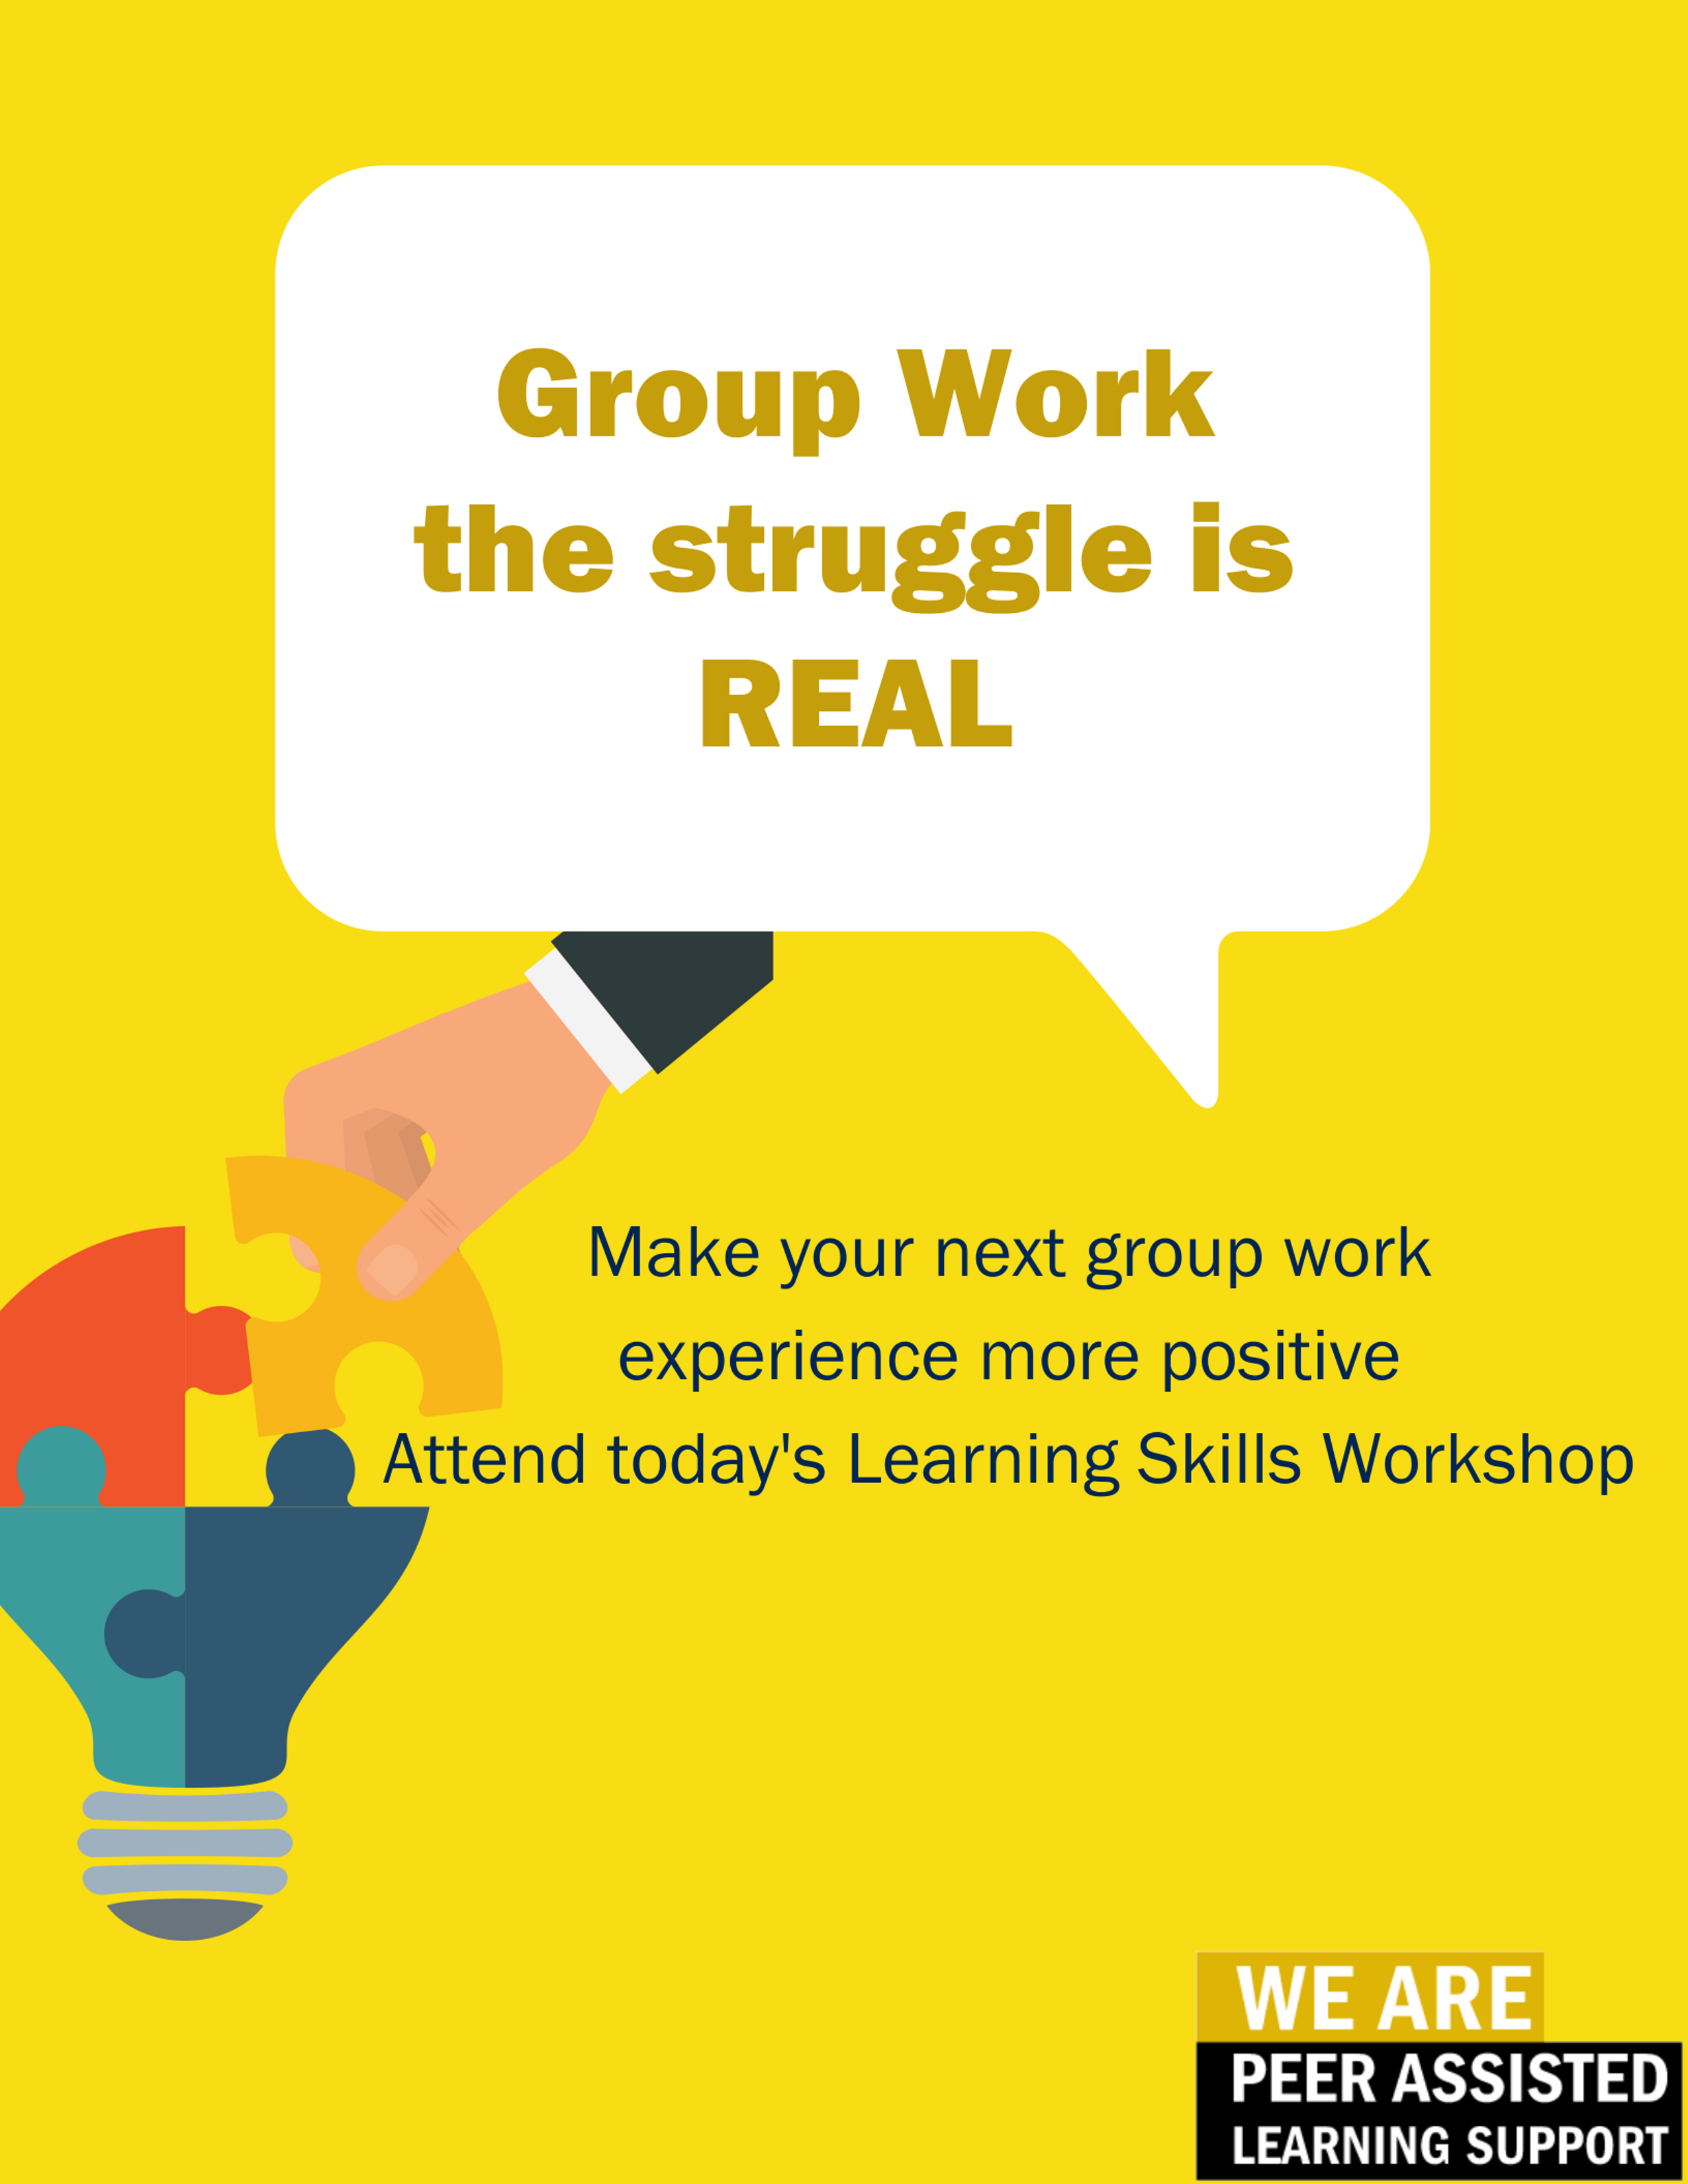 Discover ways to make your next group work a more positive experience.